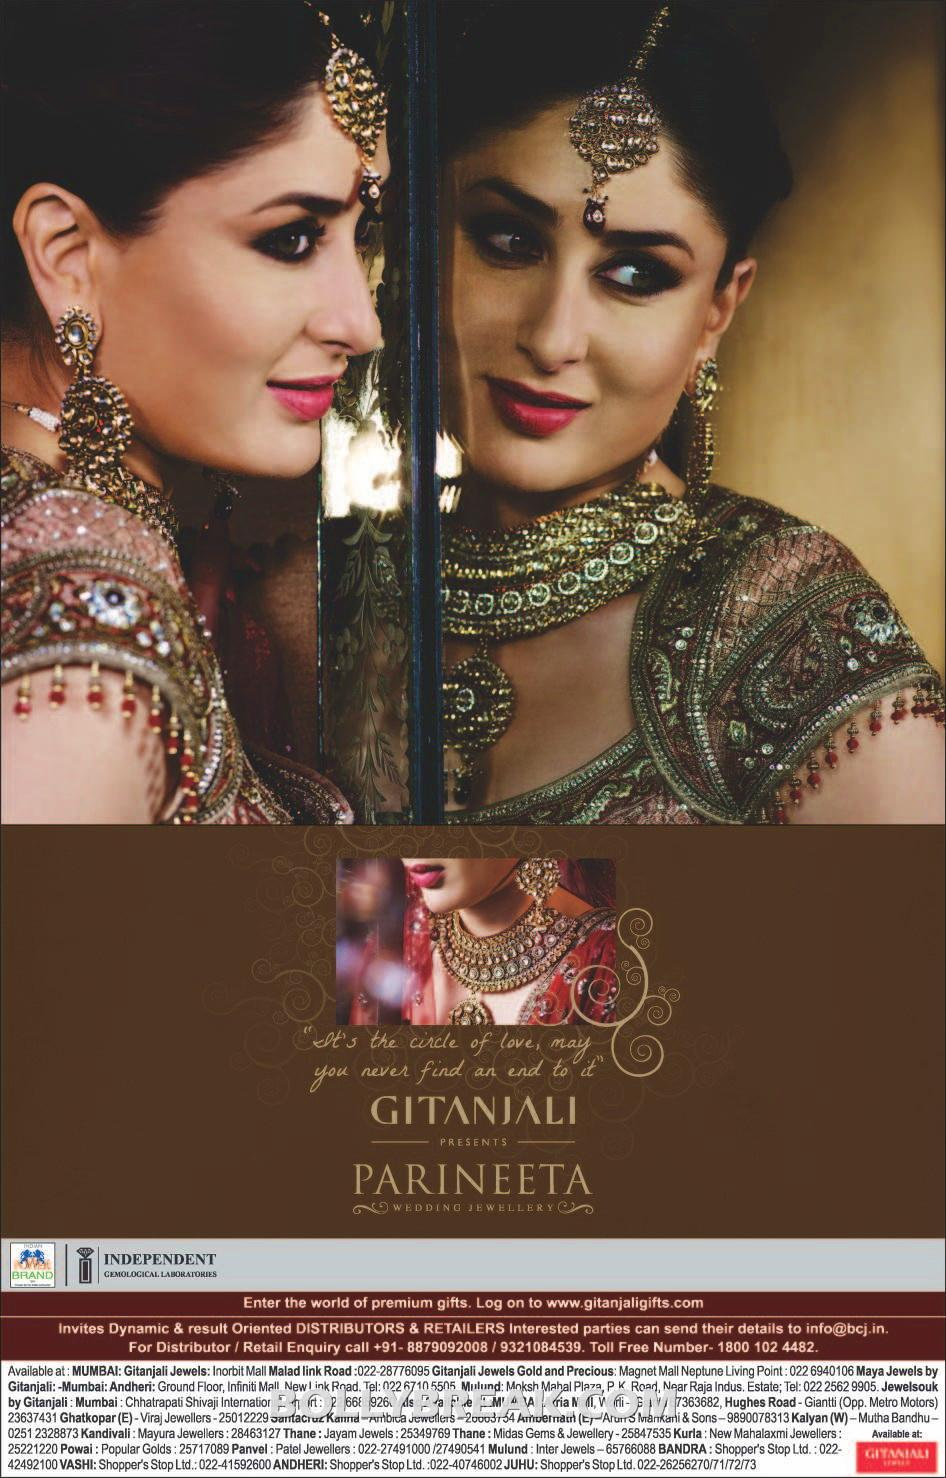 Kareena kapoor Parineeta Wedding Jewellery print ad - Kareena kapoor Parineeta Wedding Jewellery